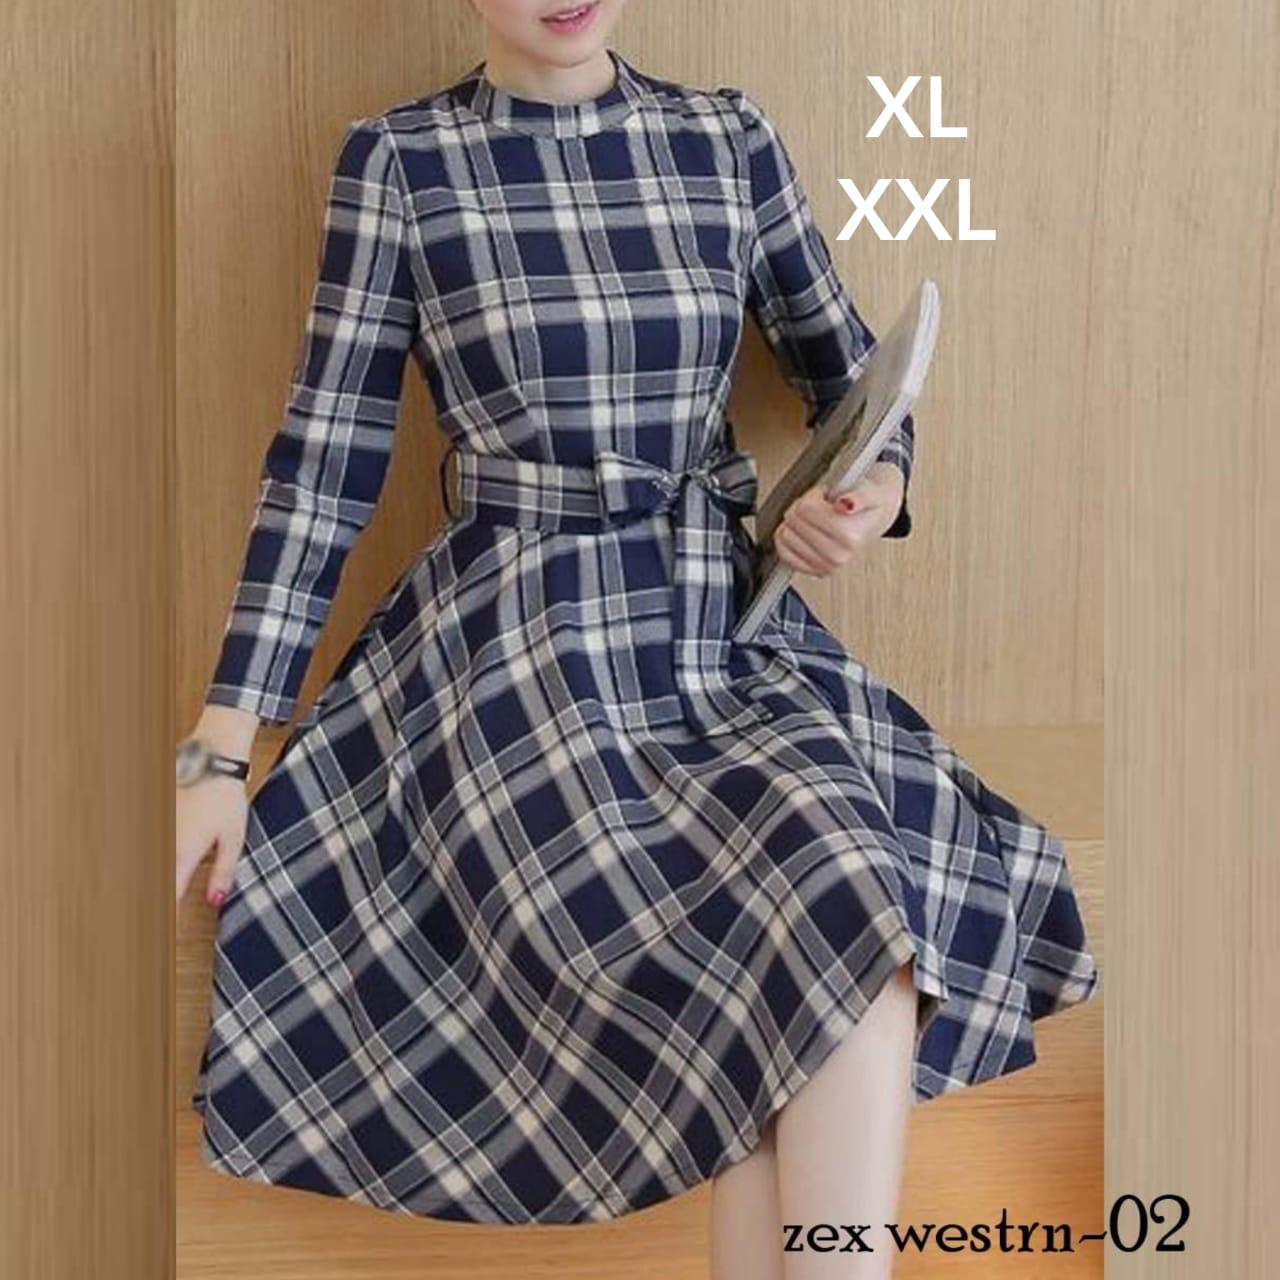 New Western Wear Vol 3 collection 2